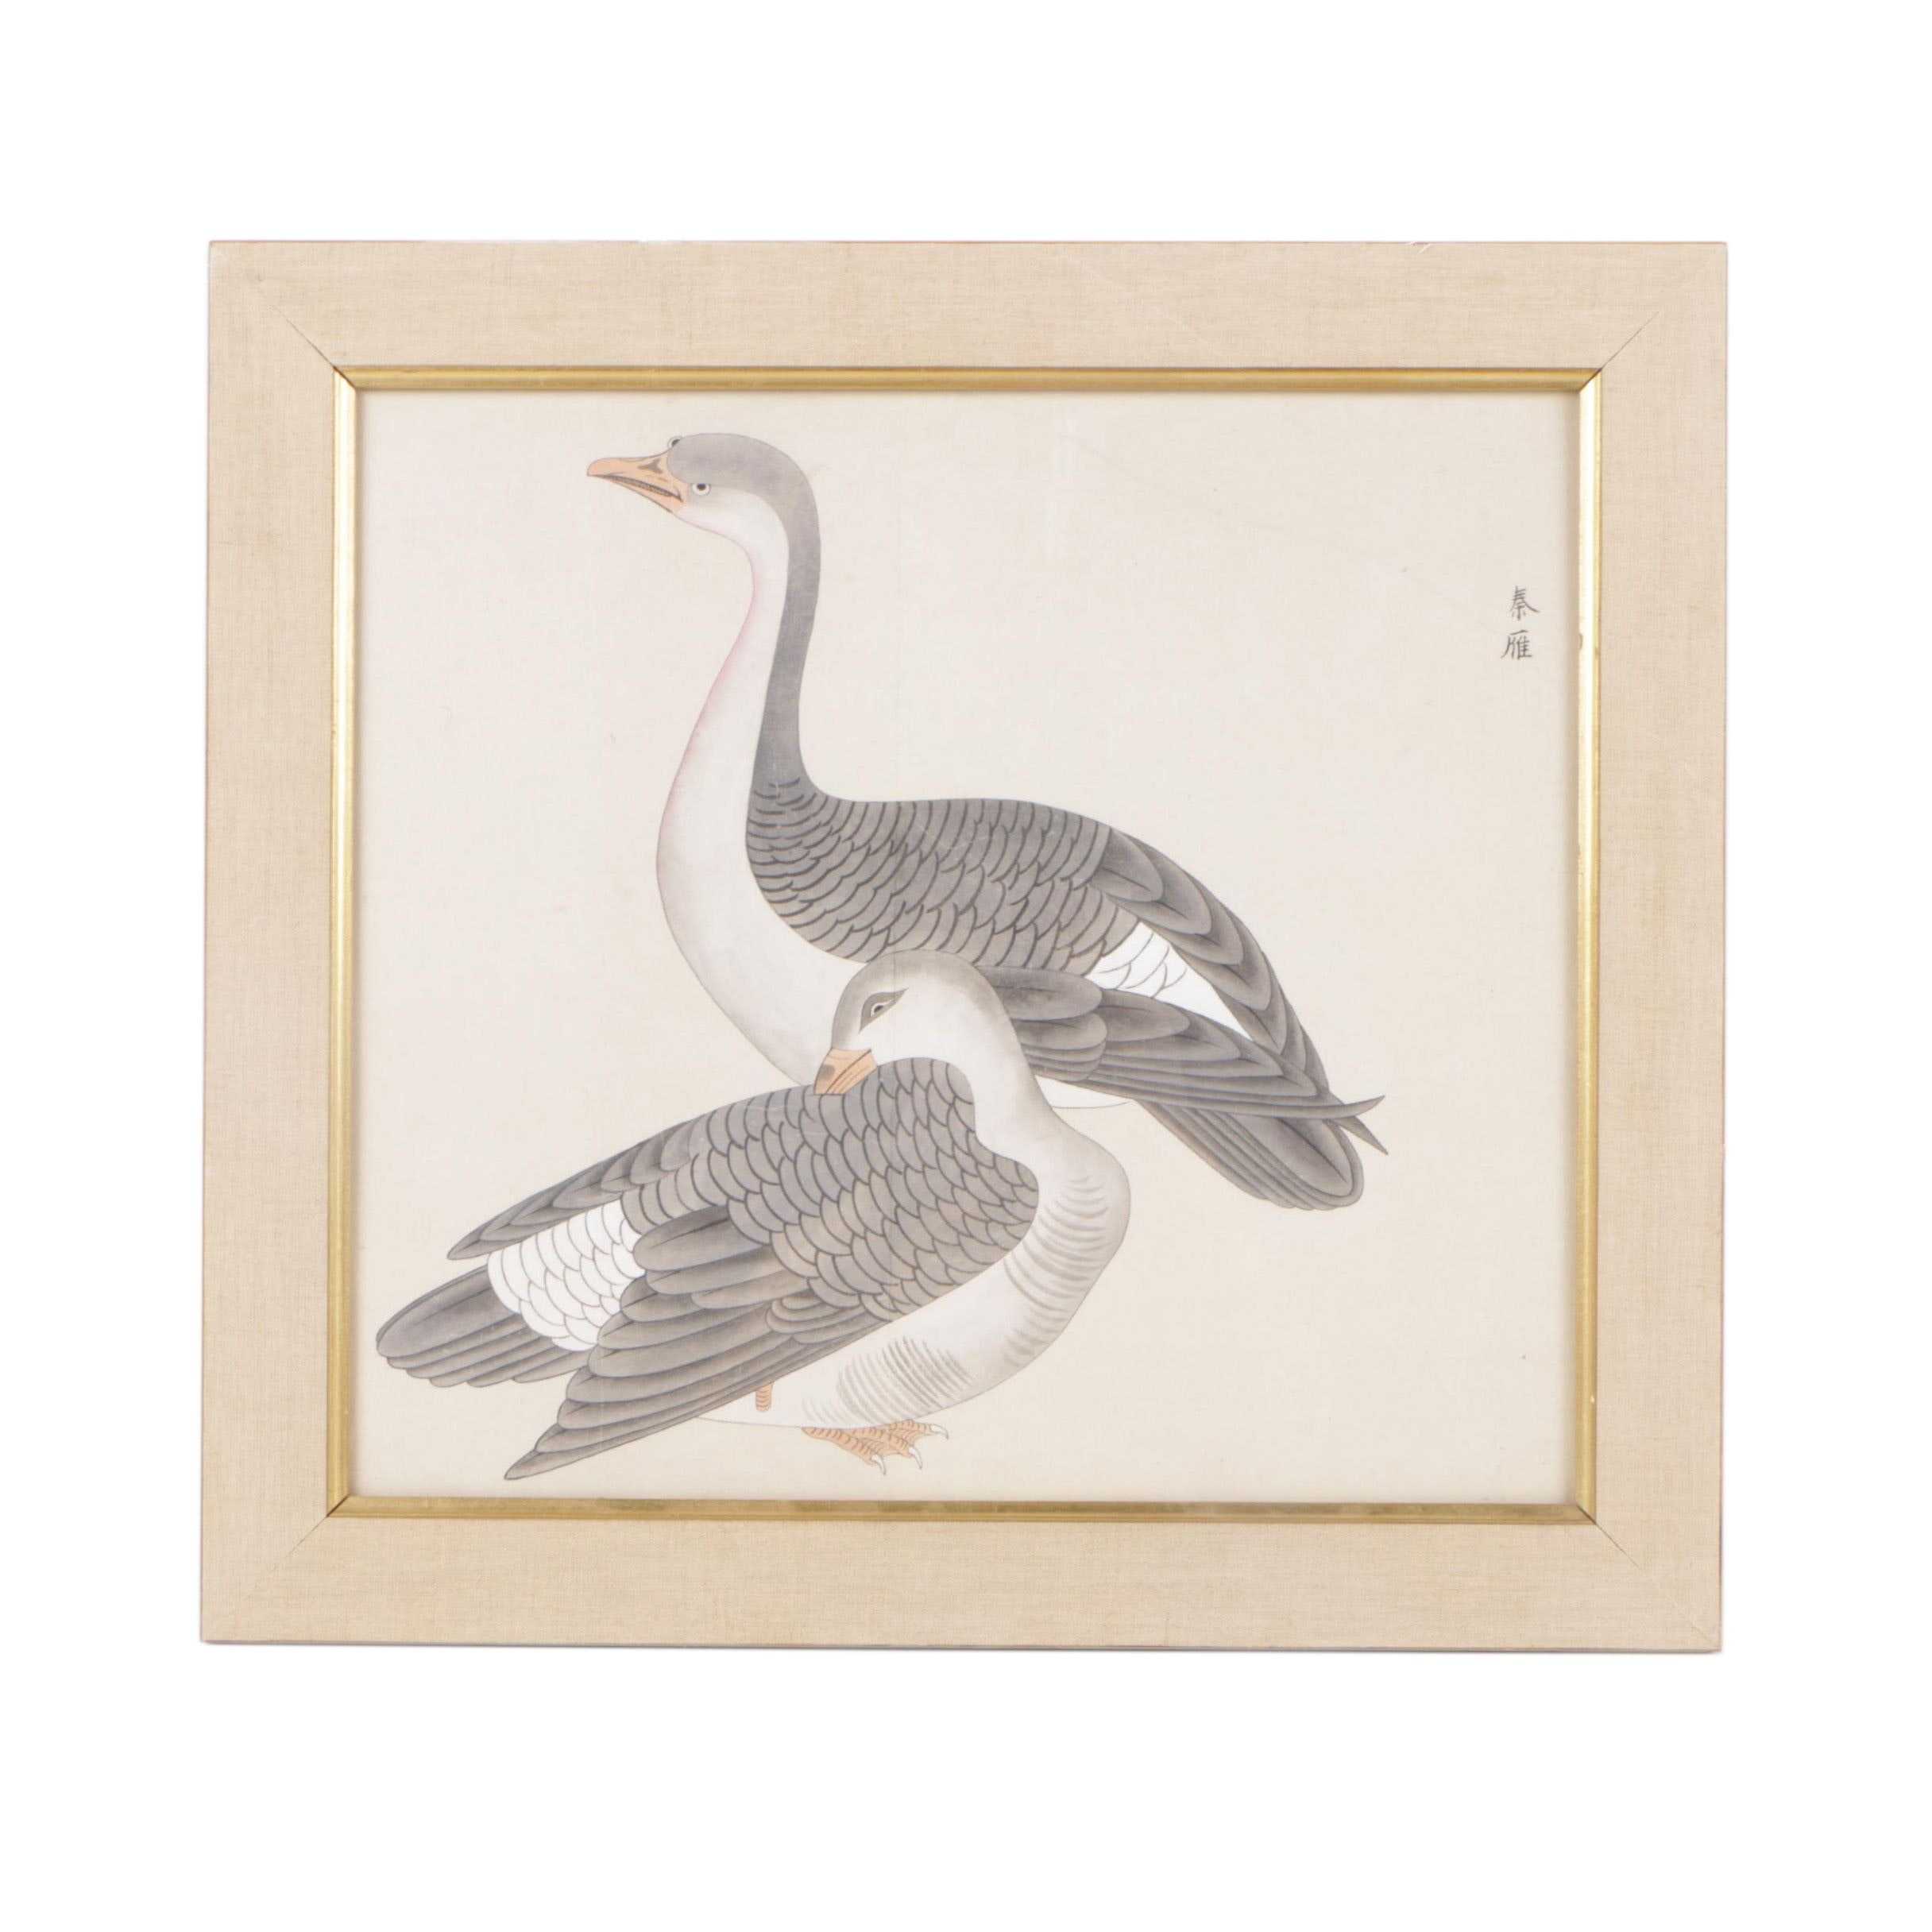 East Asian Watercolor Painting of Wild Geese